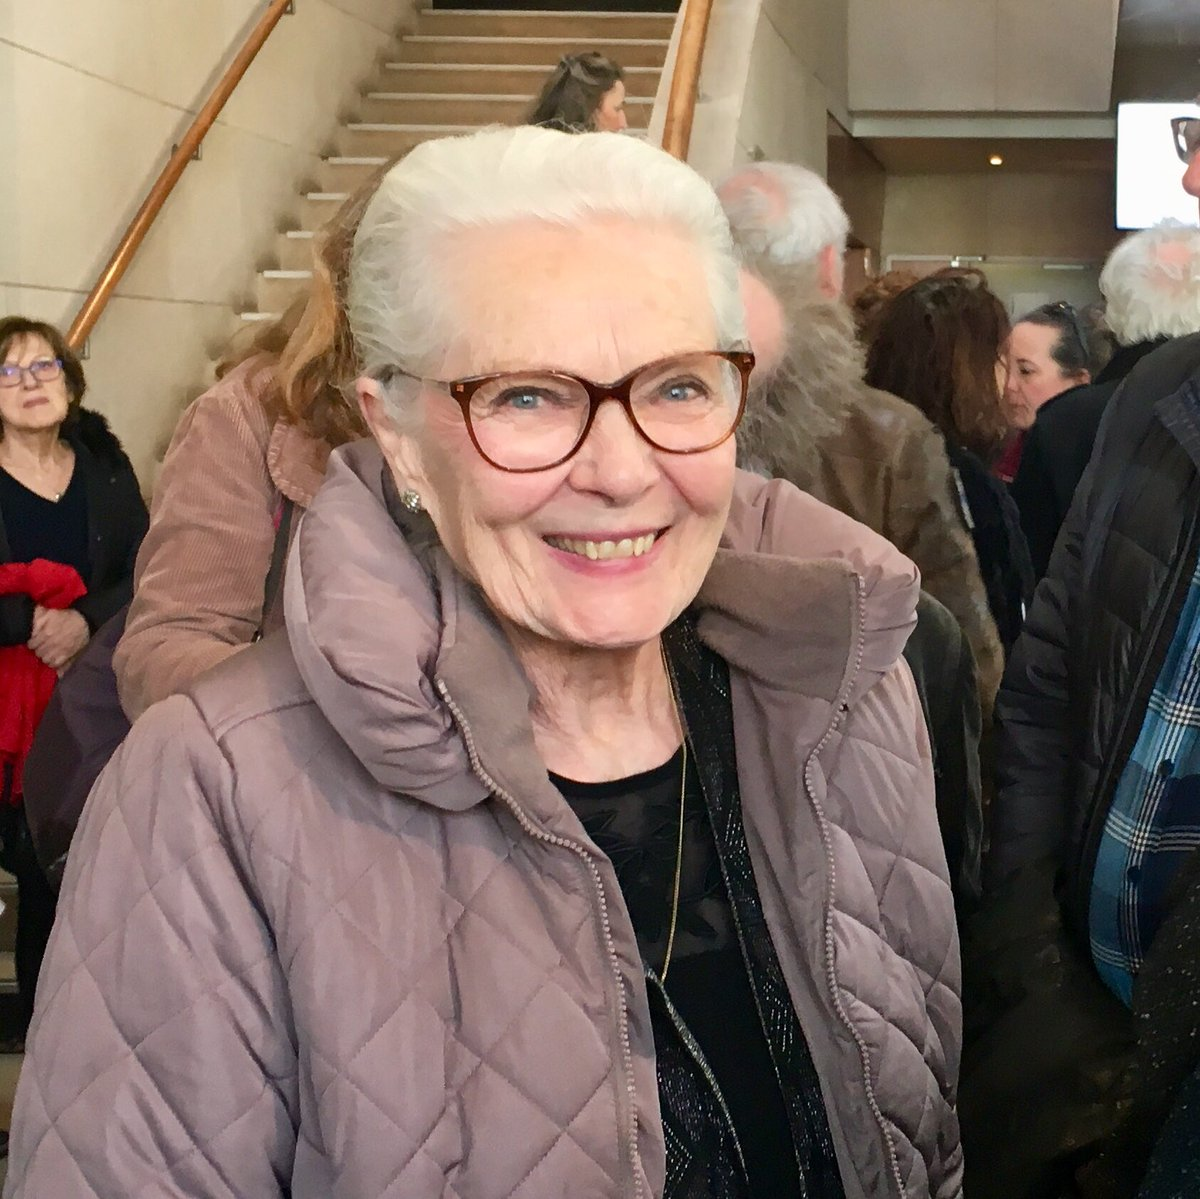 """A magic encounter at the homage to #AgnesVarda held at @cinemathequefr this morning: the great #CorinneMarchand, unforgettable """"Cléo de 5 a 7"""".<br>http://pic.twitter.com/HEUC5B9A5n"""